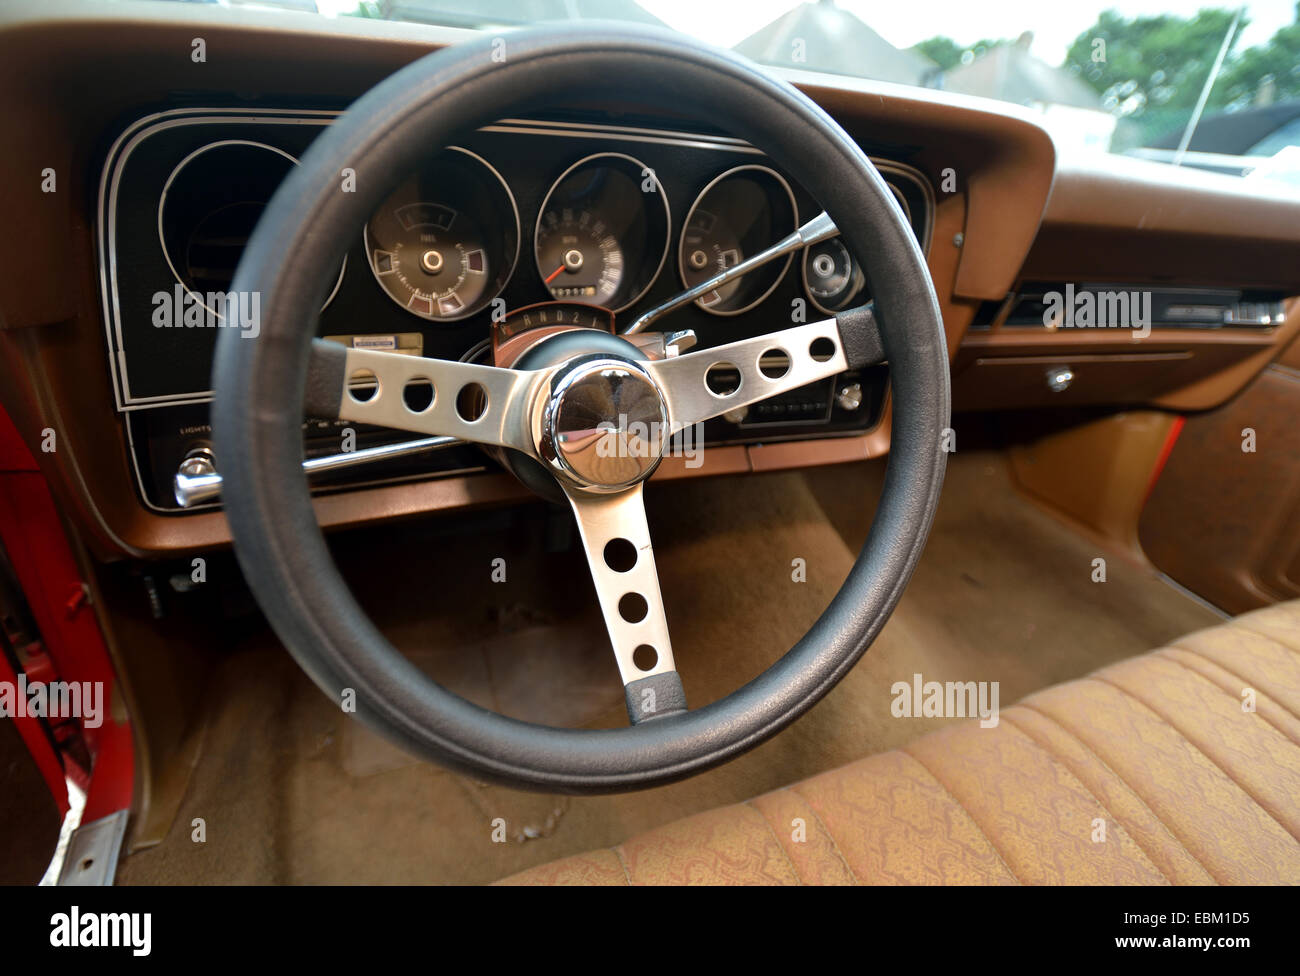 ford gran torino starsky and hutch replica car steering wheel stock photo royalty free image. Black Bedroom Furniture Sets. Home Design Ideas